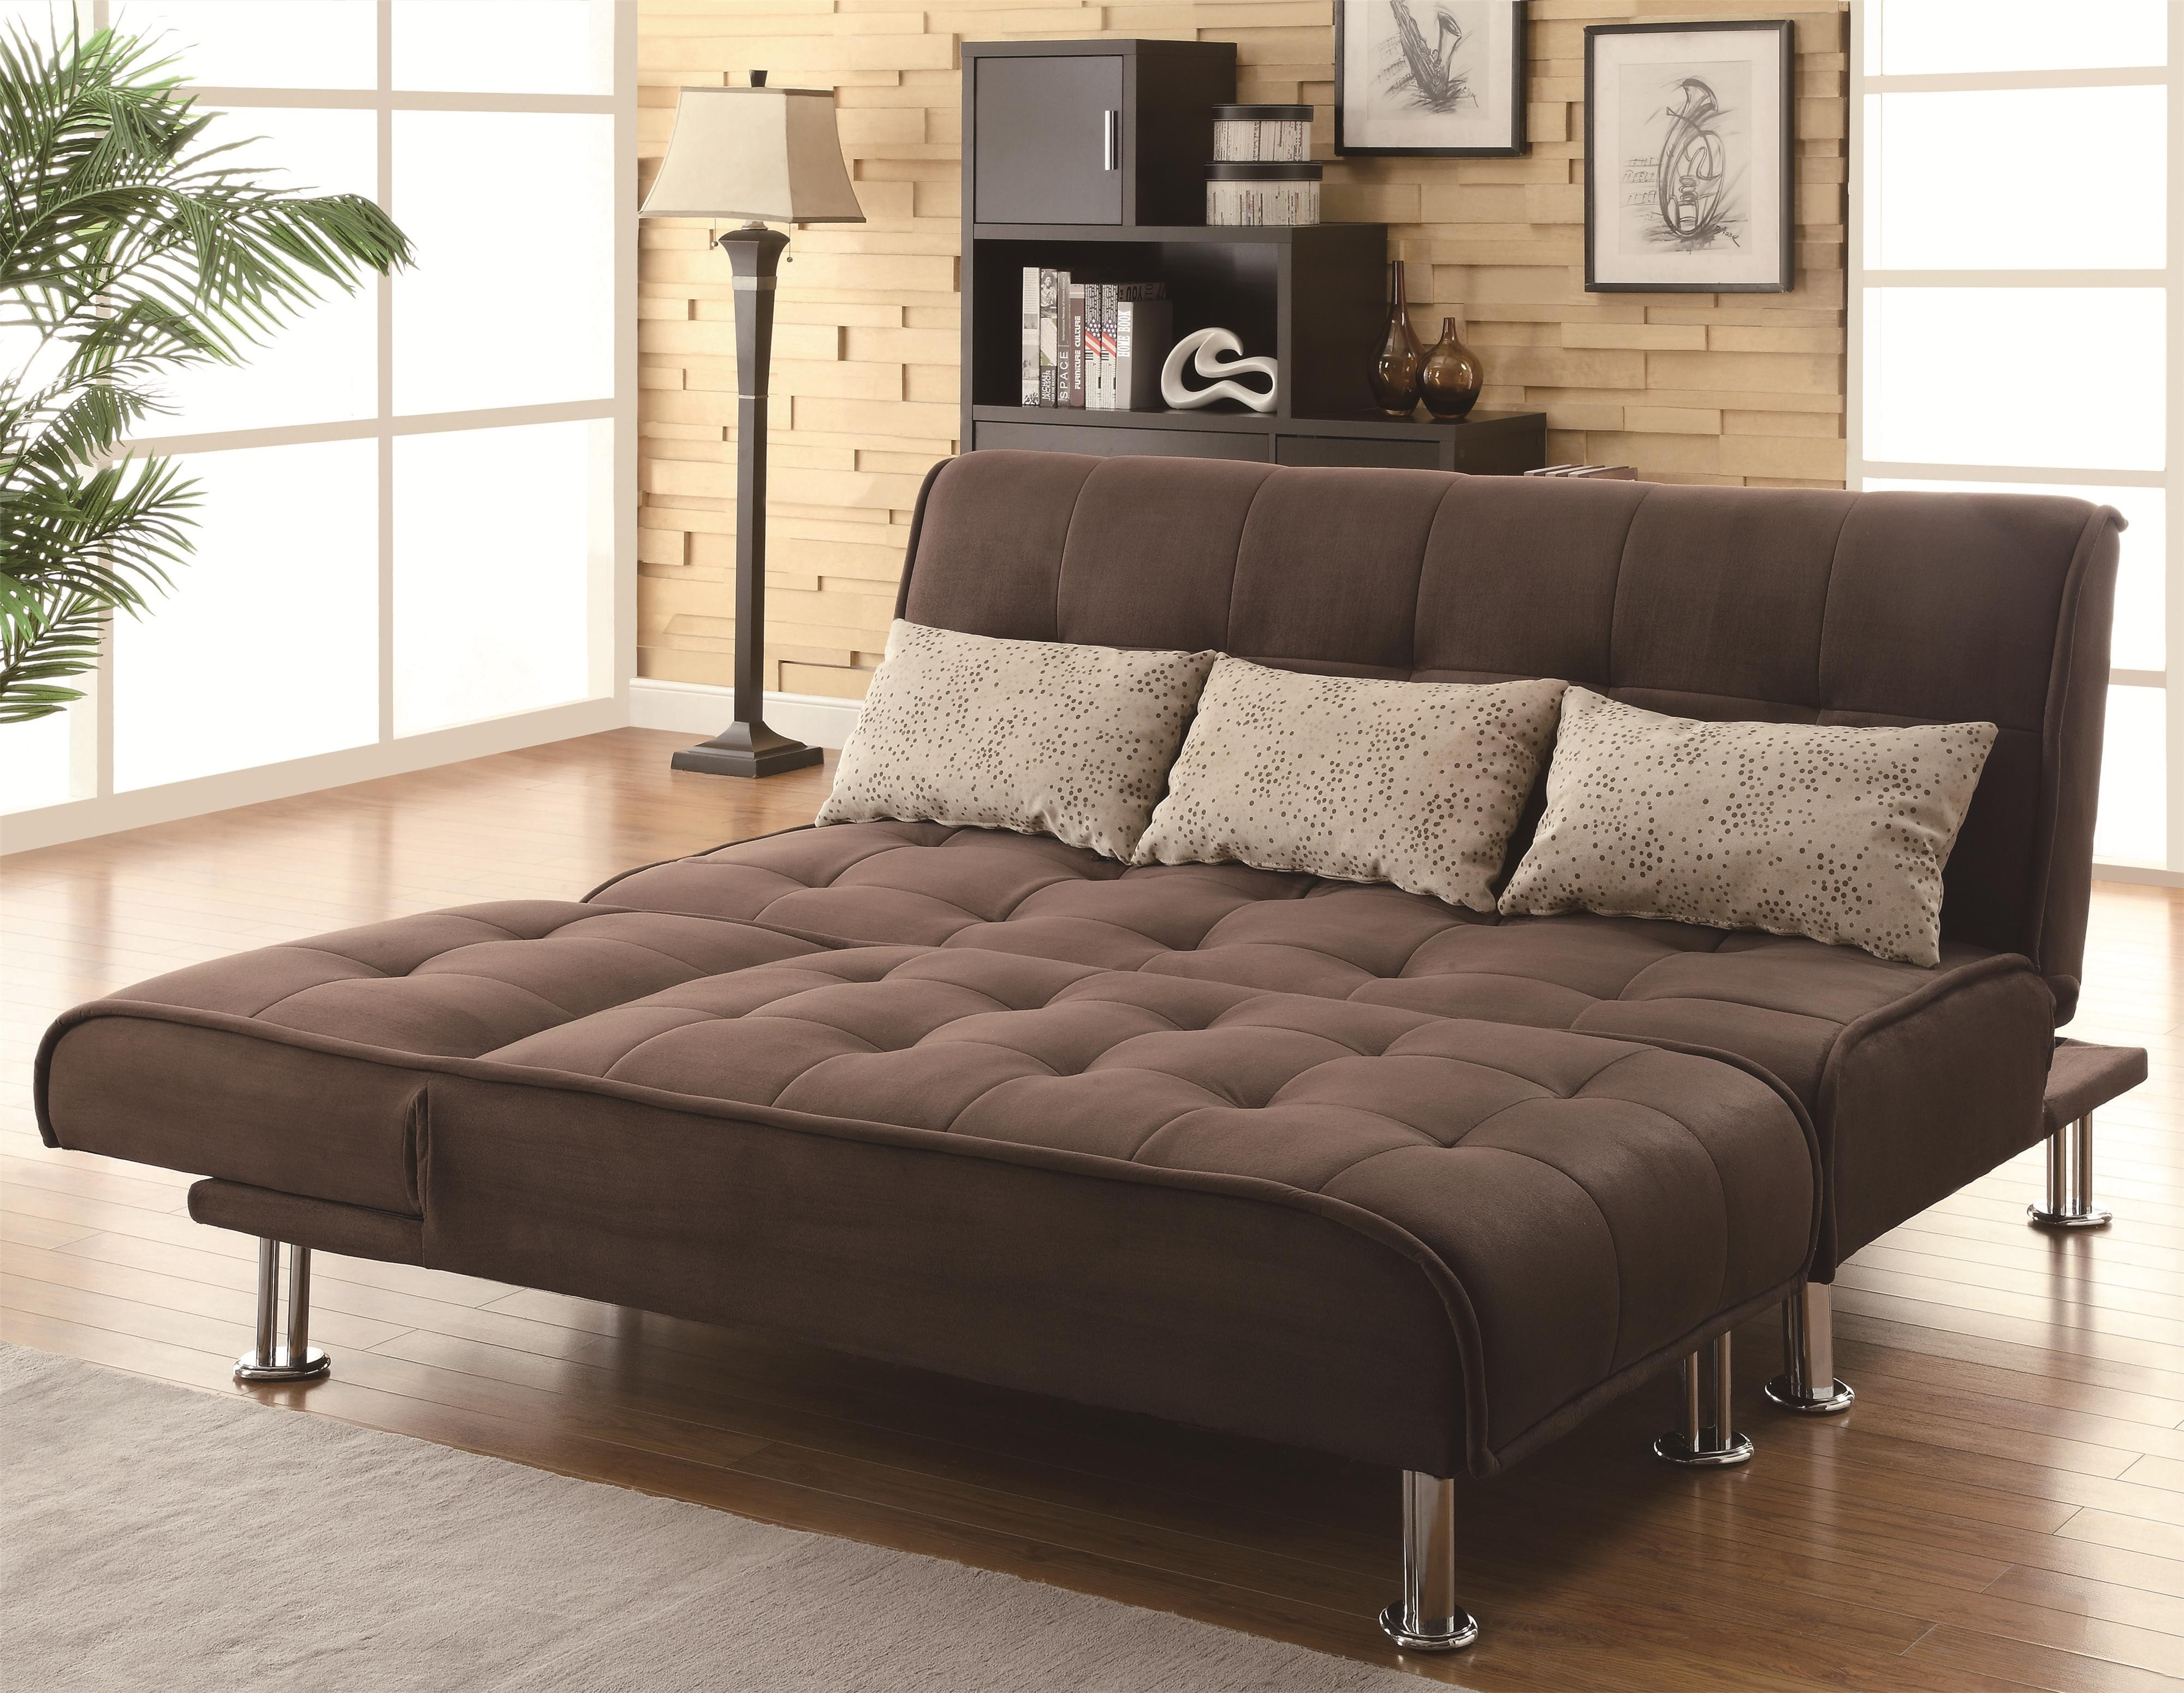 mattress for sleeper sofa. Sofa Bed Sleeper Pillows Rug Plants Lamp Cabinet Pictures Mattress For T